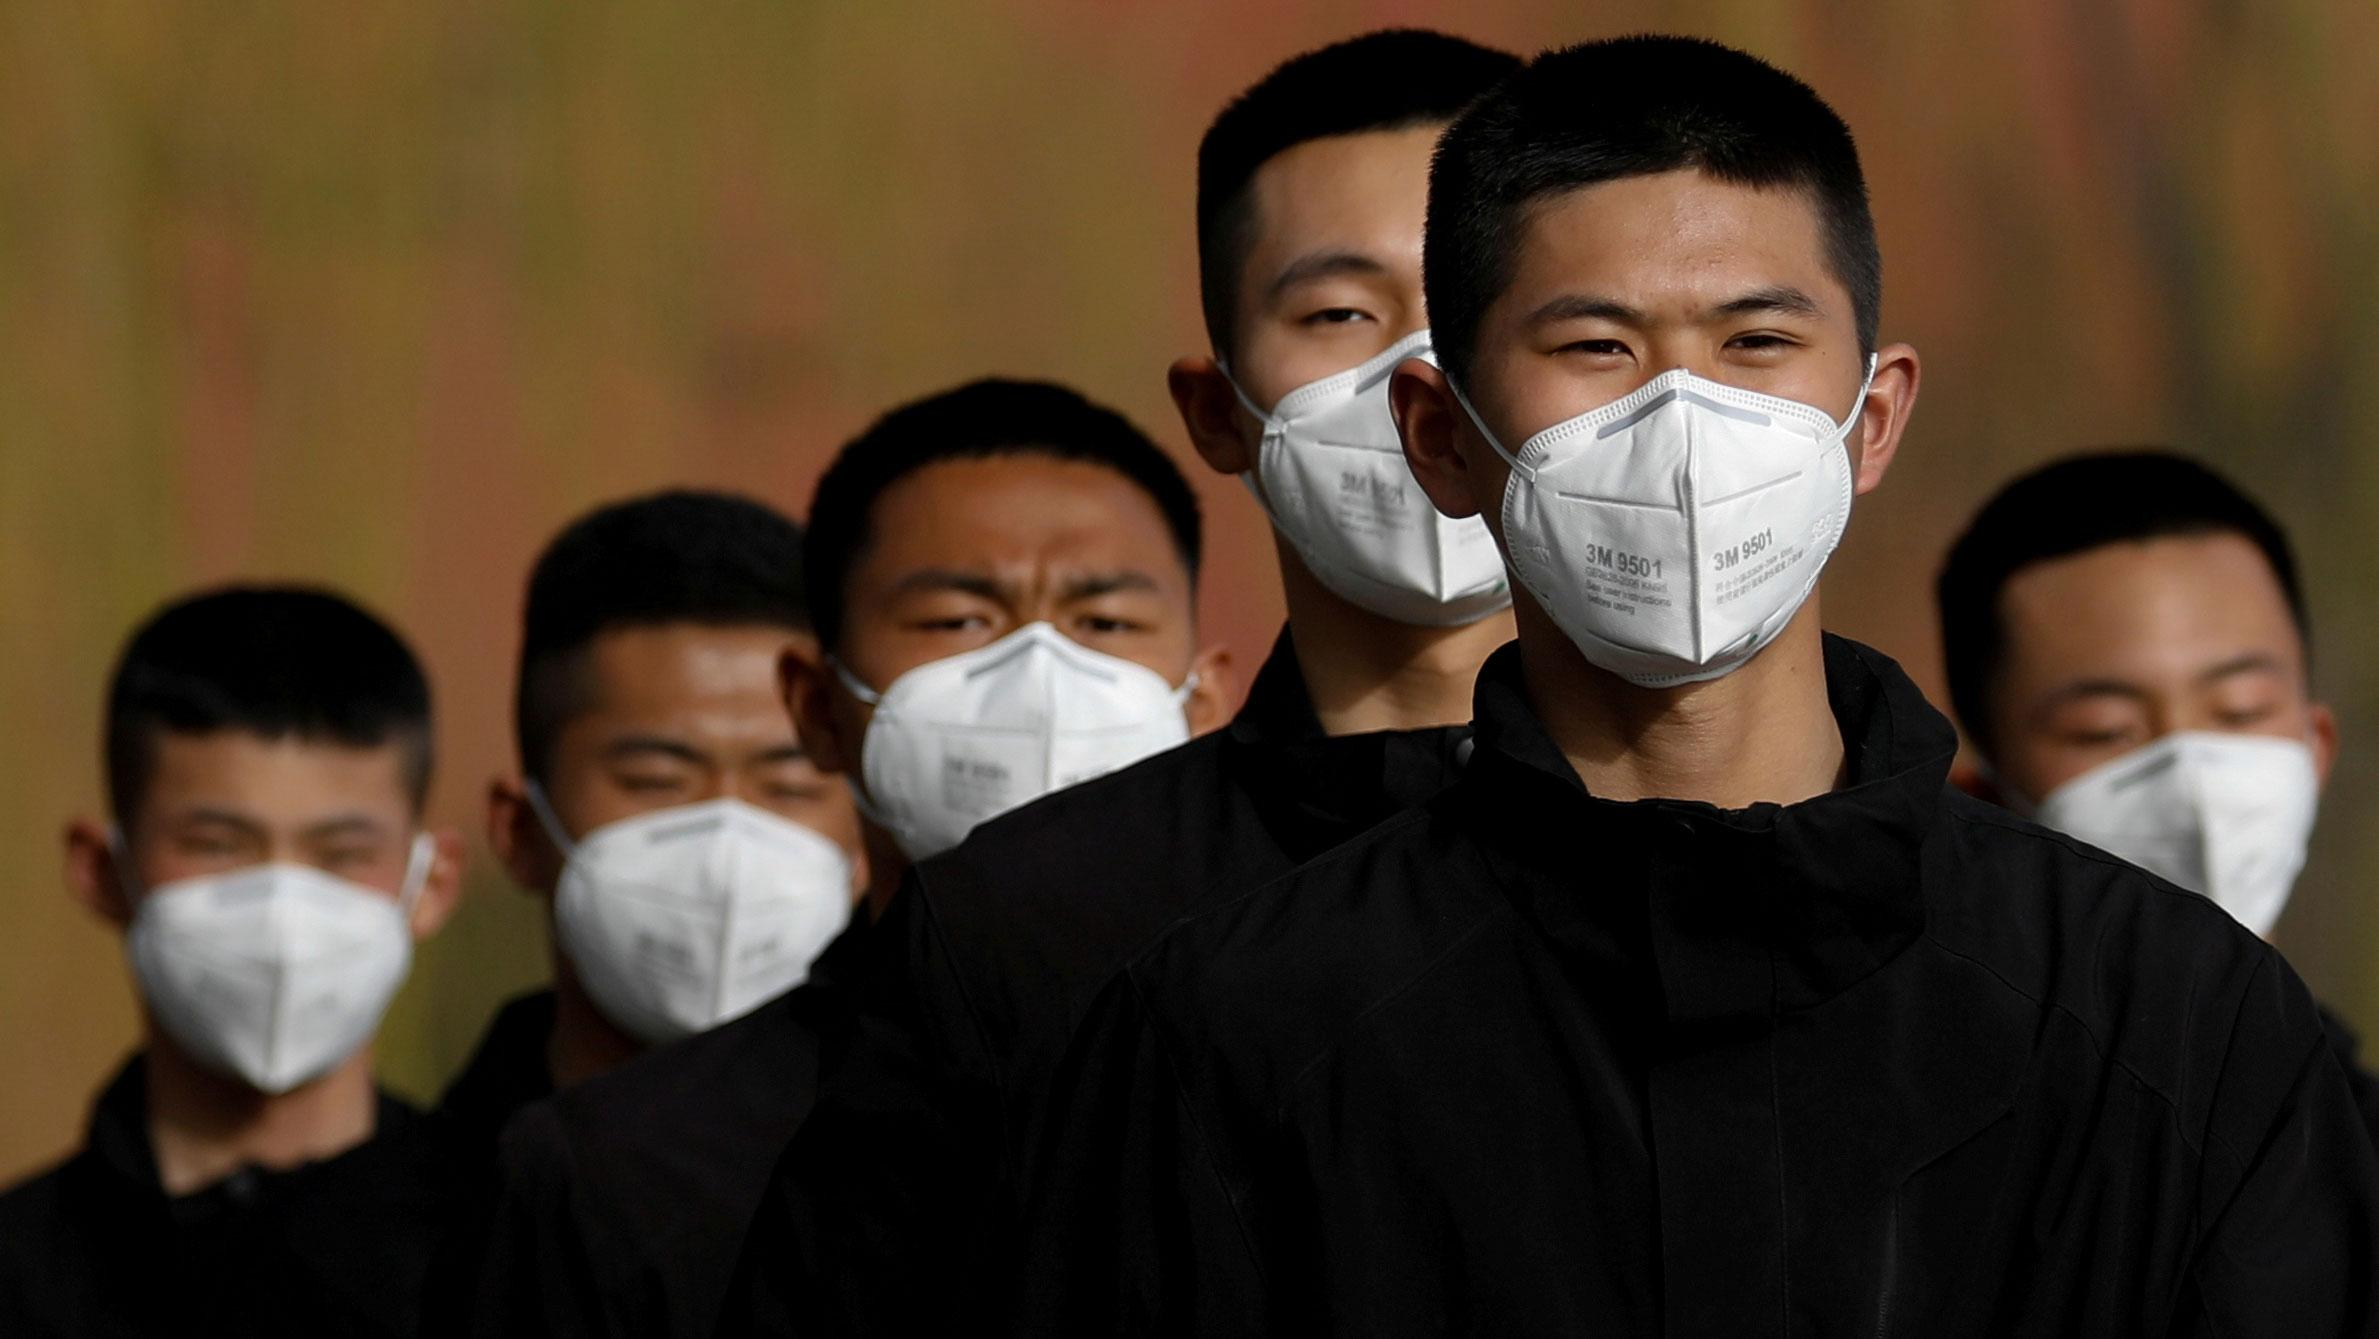 The photo shows half a dozen young men with short cropped hair and all-black clothes in a line, wearing masks.